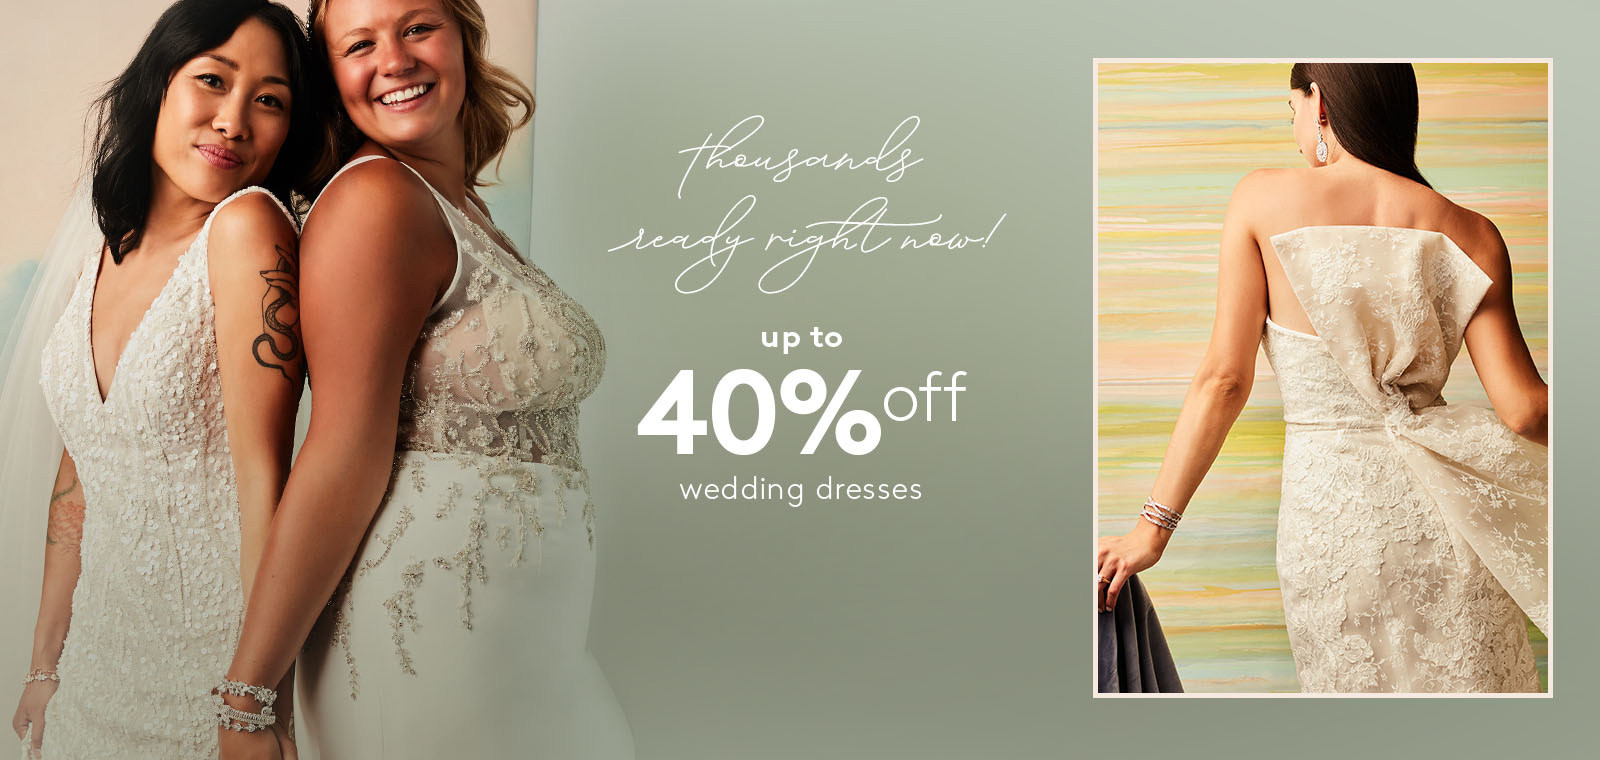 thousands ready right now! up to 40% off wedding dresses